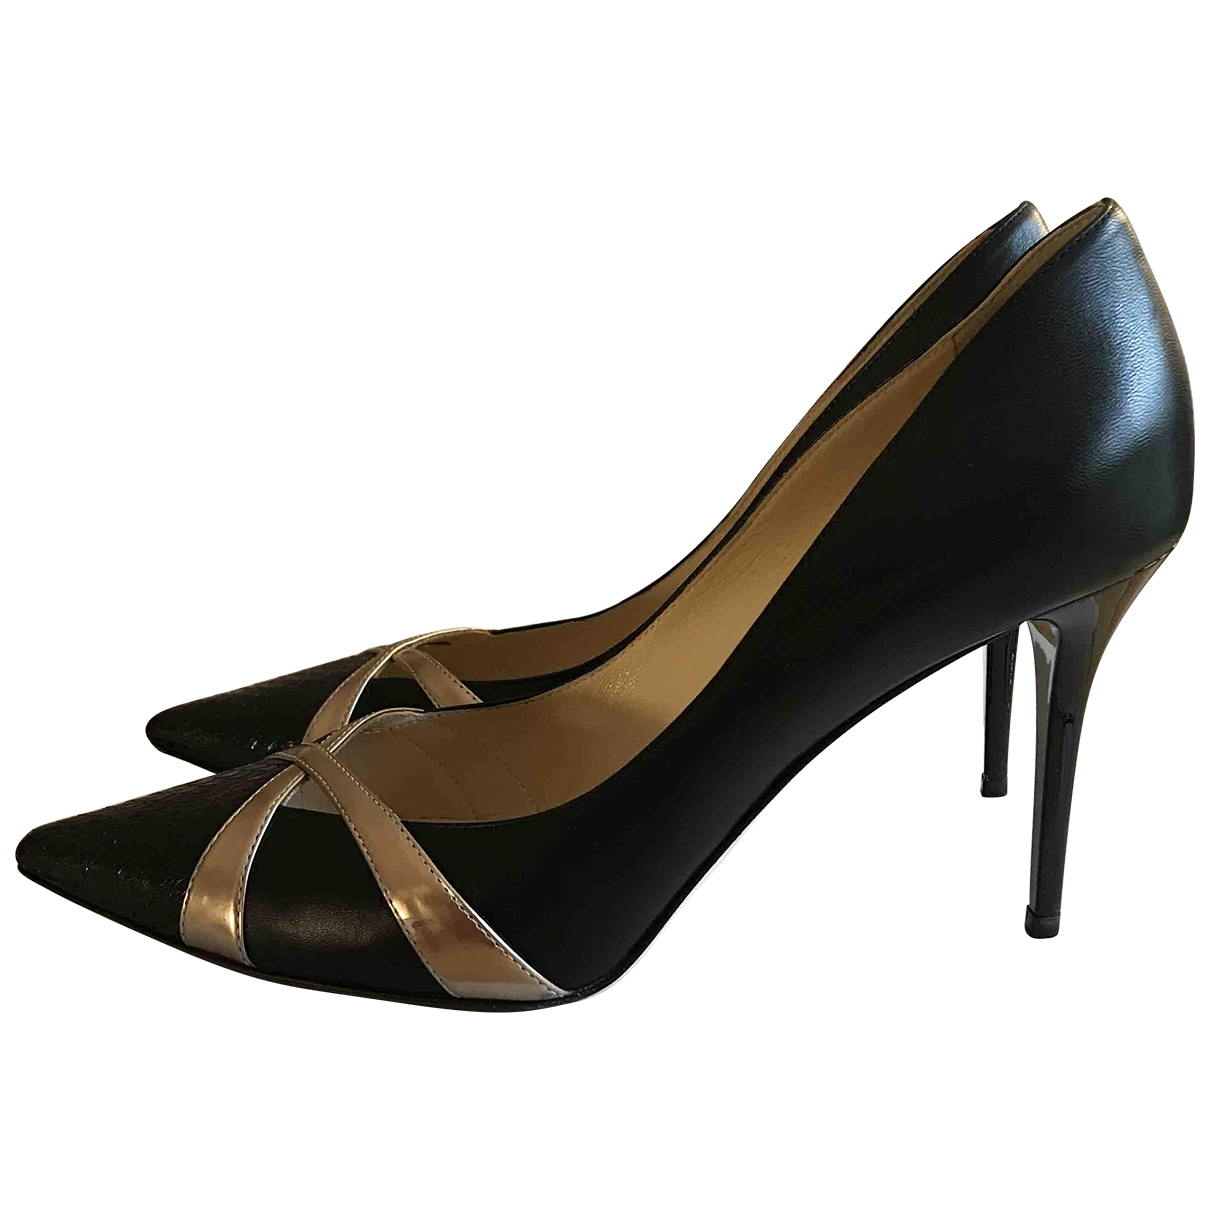 Jimmy Choo \N Black Leather Heels for Women 39.5 EU